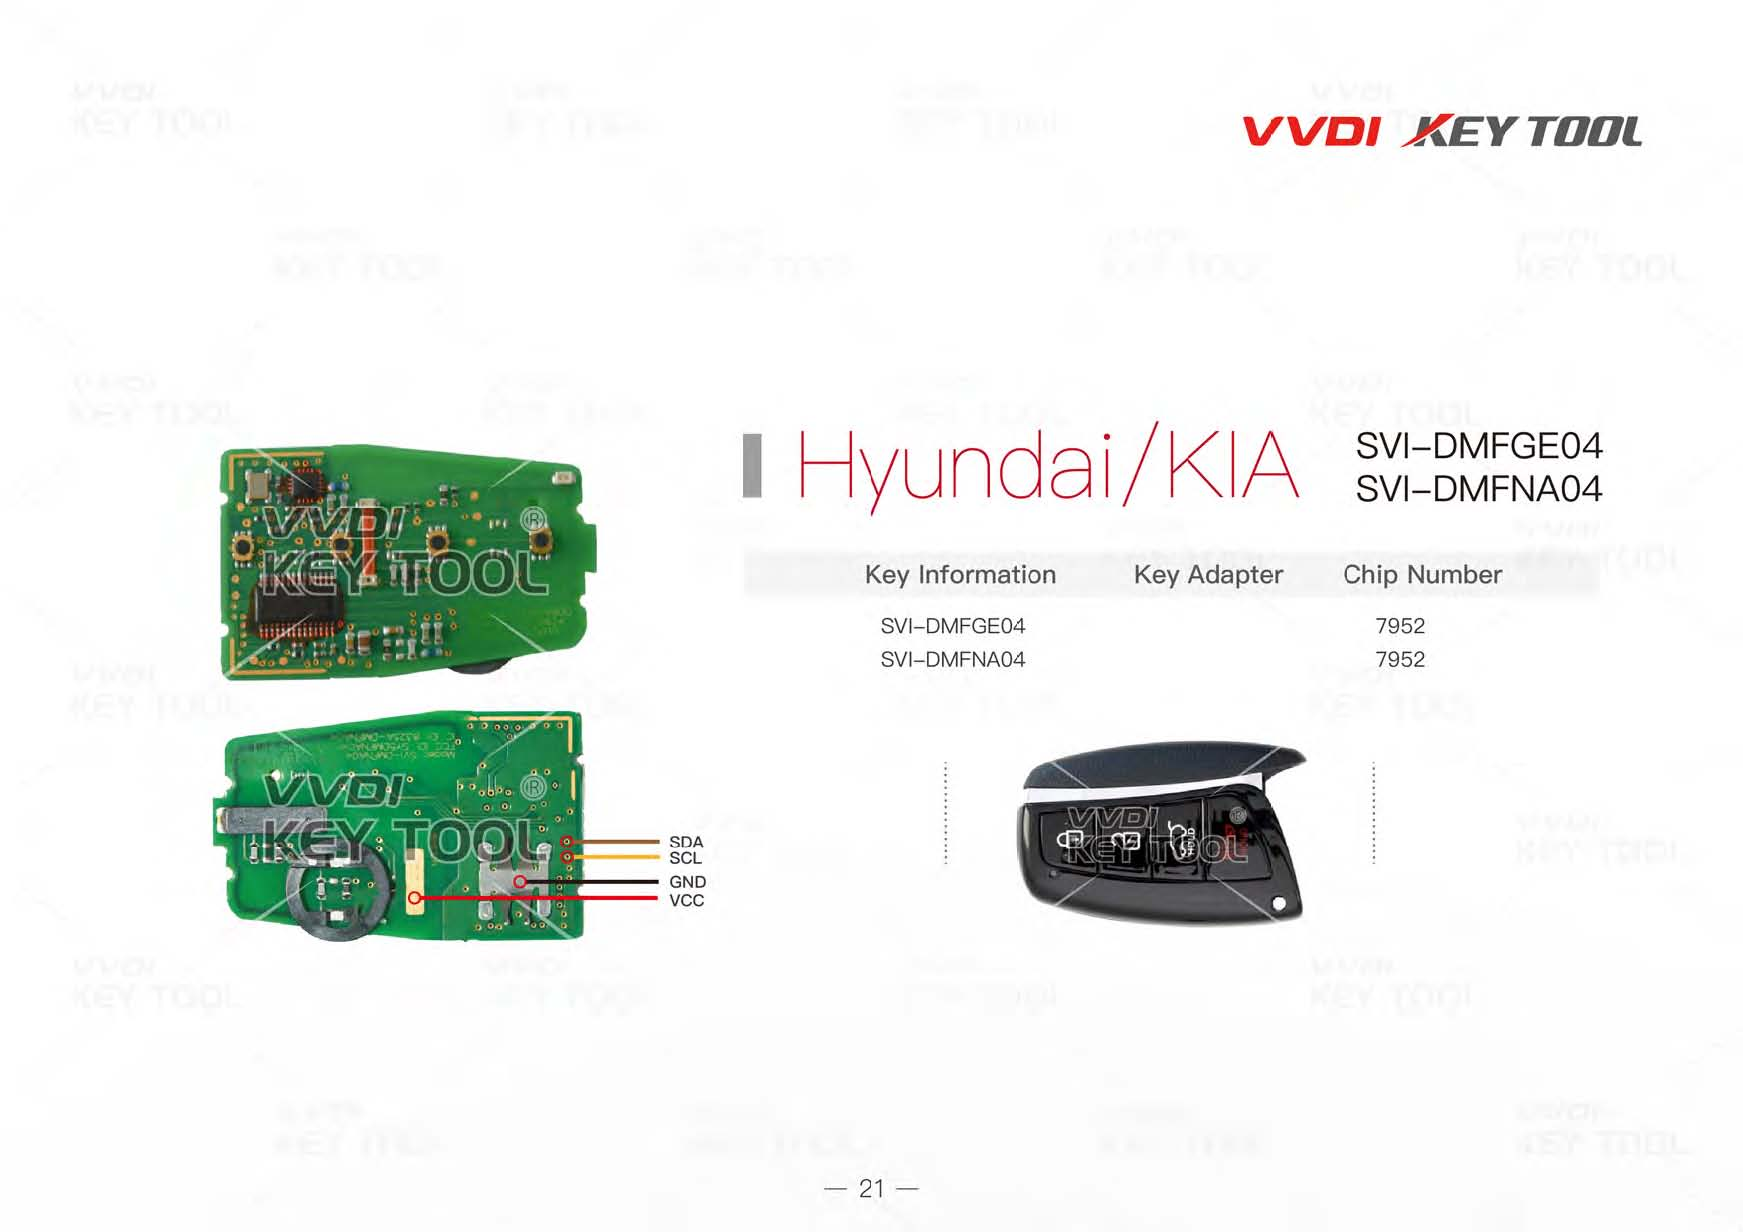 vvdi-key-tool-renew-diagram-21